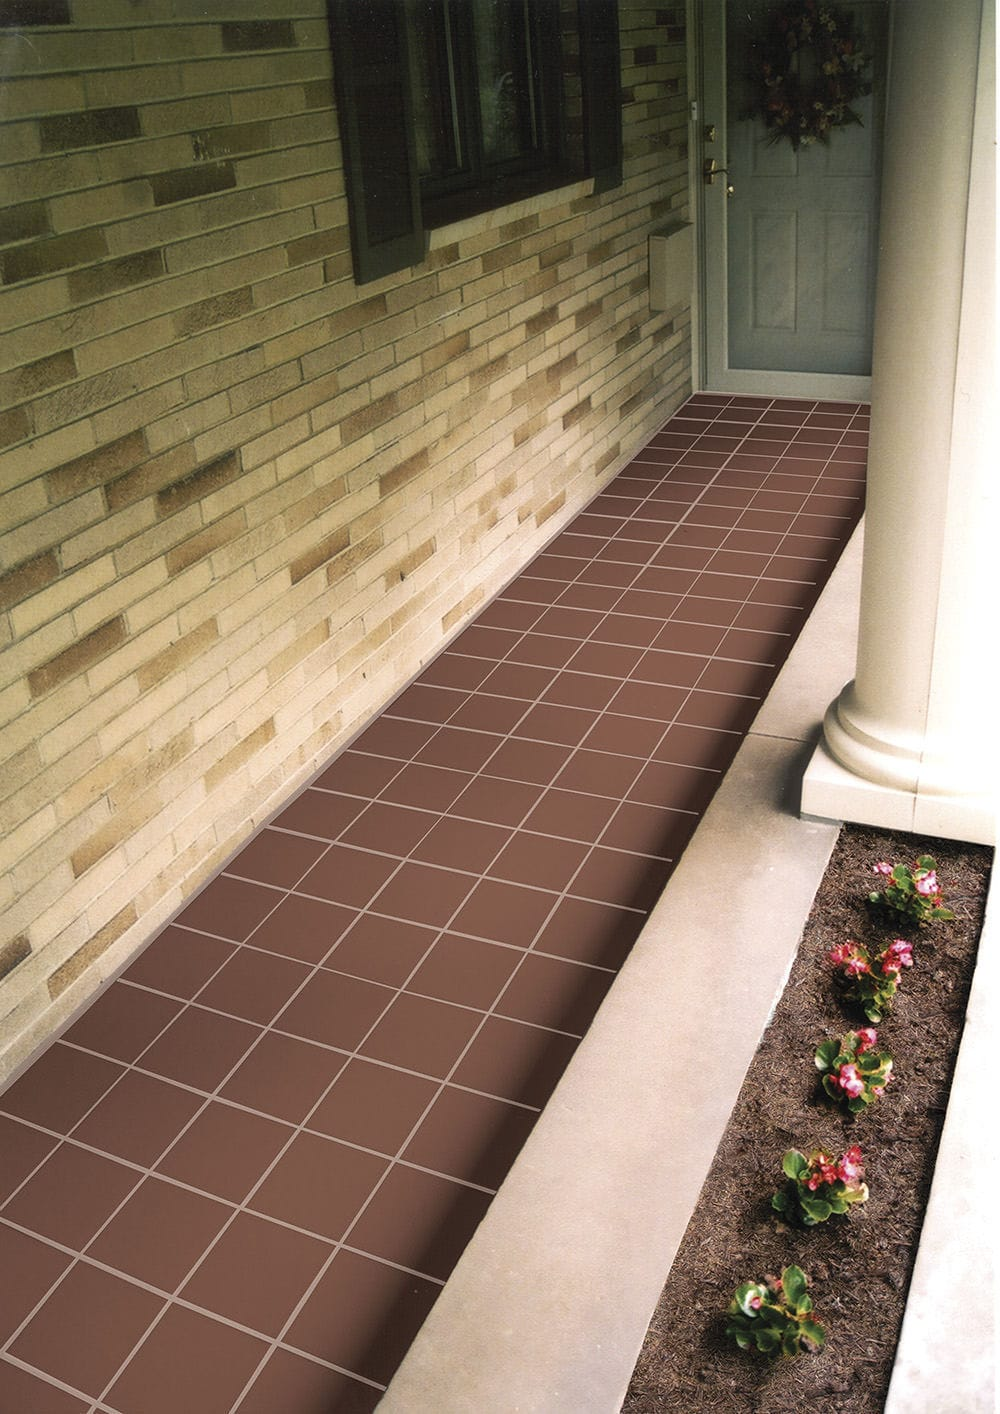 Outdoor tile floor clay polished colonial quarry outdoor tile floor clay polished colonial quarry dailygadgetfo Image collections